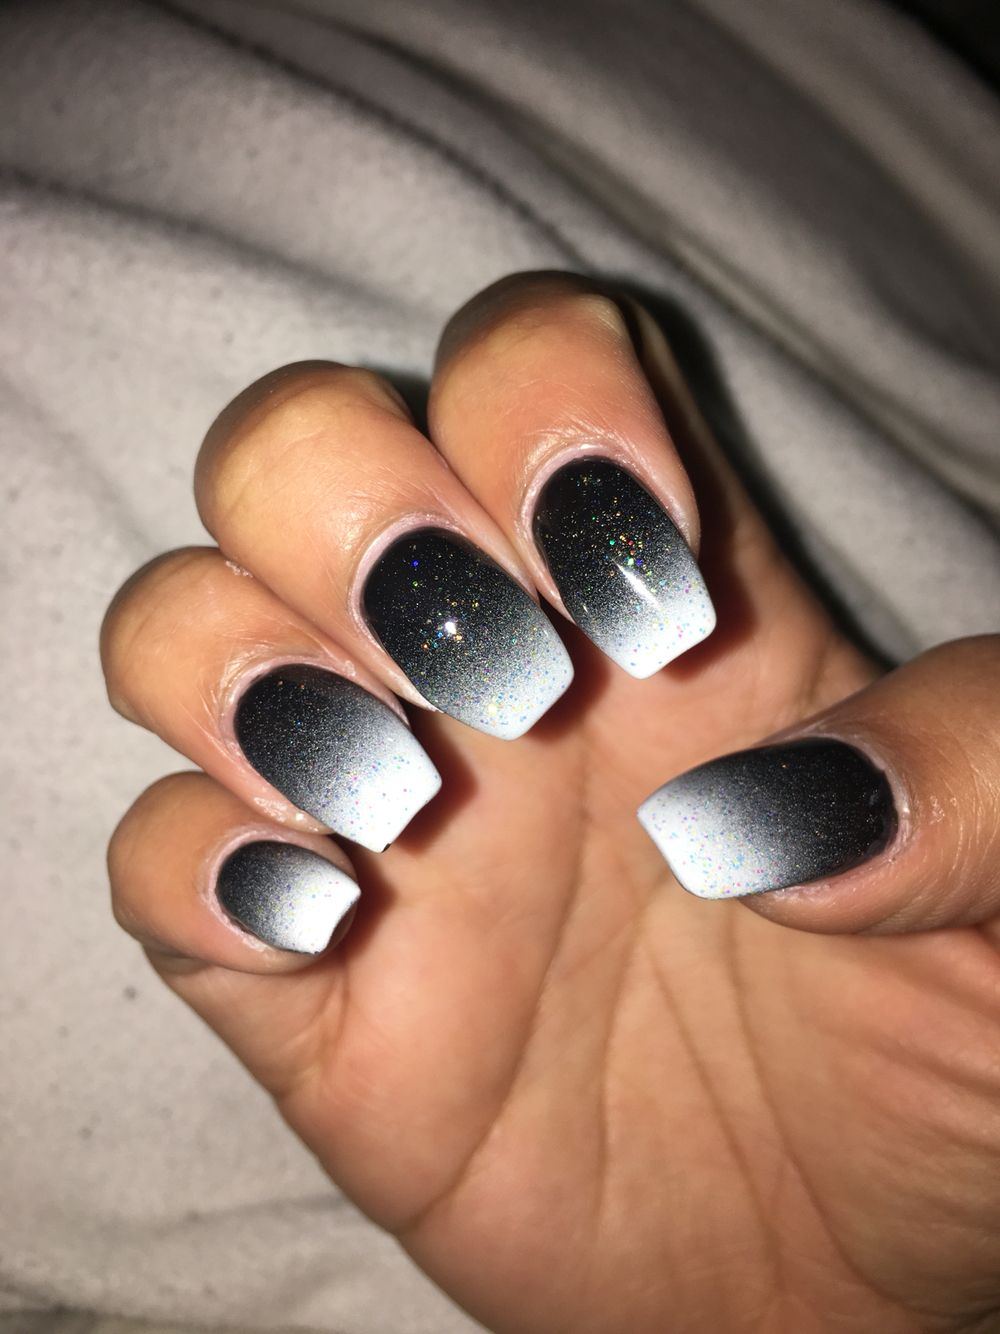 Black And White Ombre Nails Black Prom Nails Black Ombre Nails Black And White Nail Designs